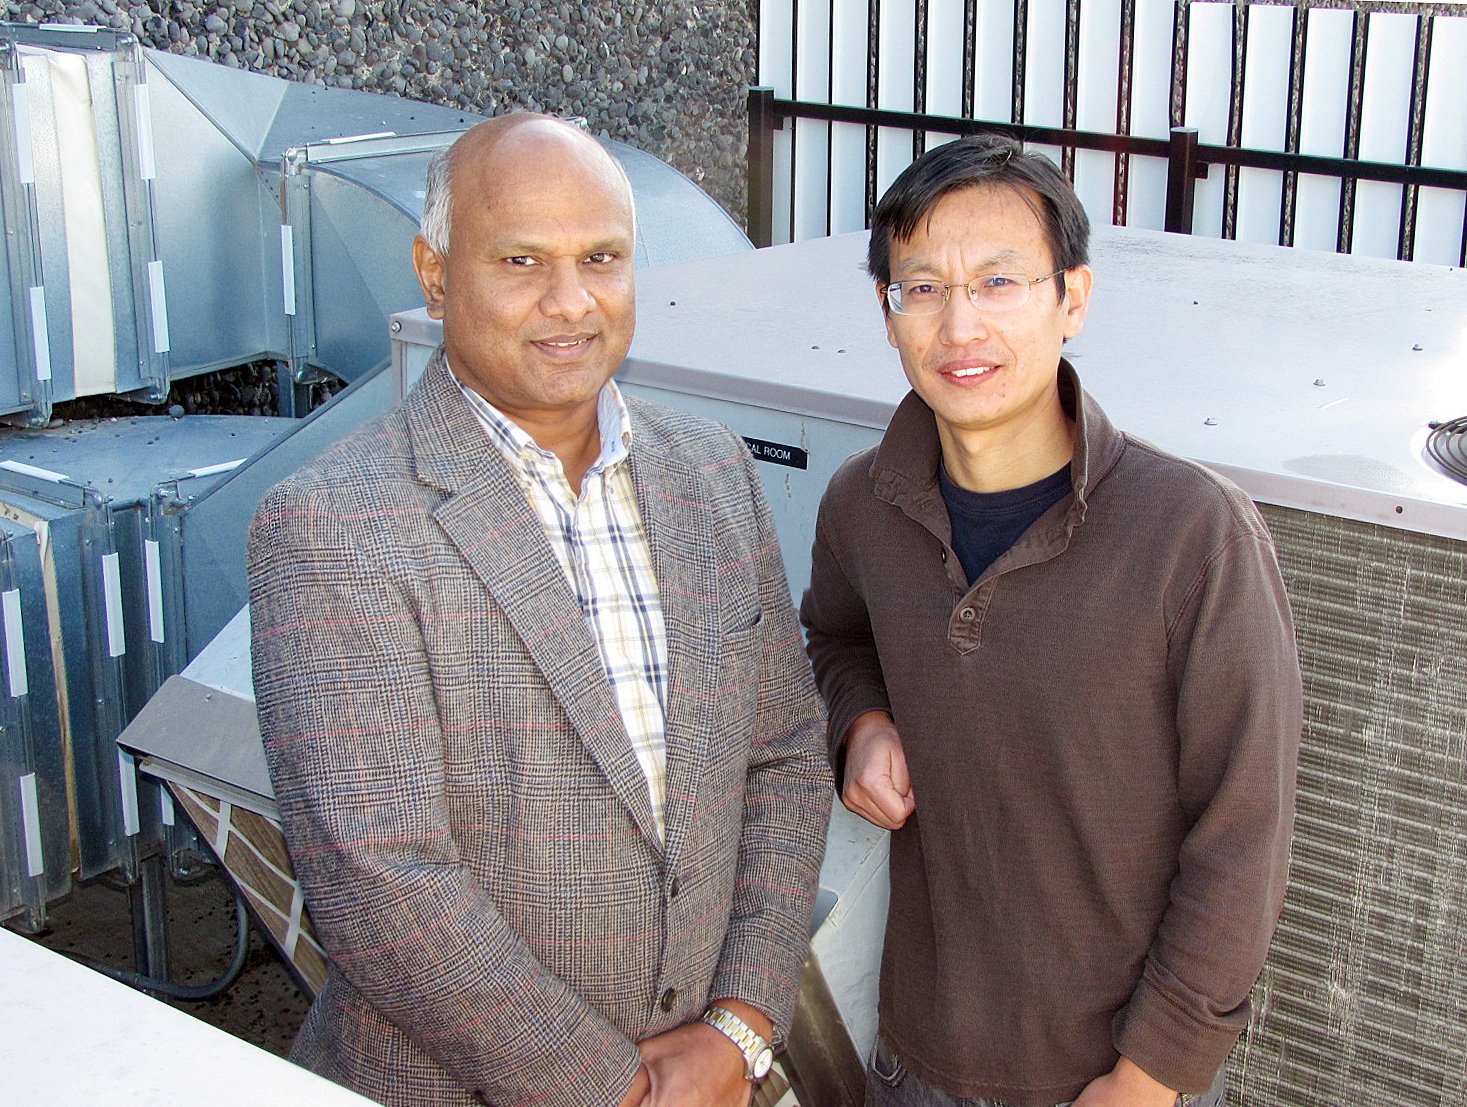 Srinivas Katipamula (left) and Weimin Wang